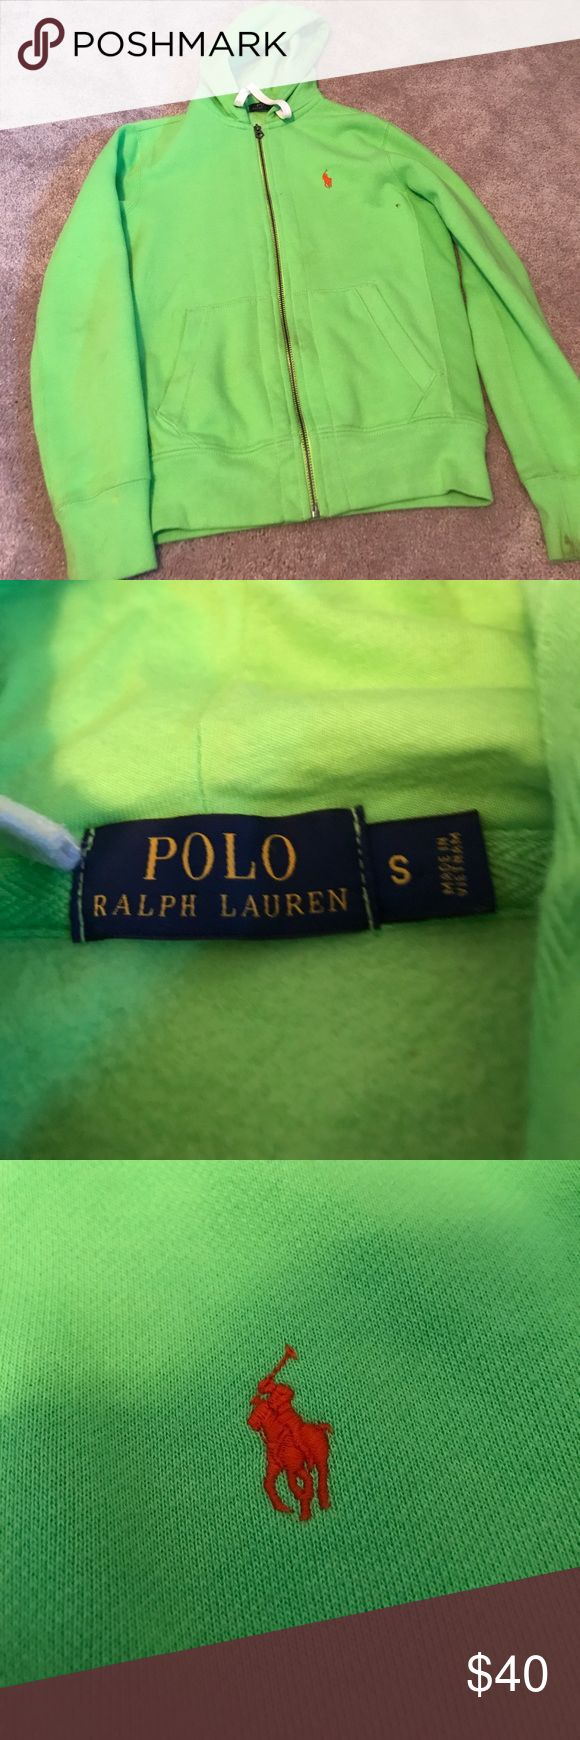 Men's Polo Ralph Lauren Green Zip up Hoodie Small This is a fully authentic men's polo Ralph Lauren hoodie. A little dirt on sleeves, but easily cleanable with oxy clean. Condition 8.5/10 Polo by Ralph Lauren Shirts Sweatshirts & Hoodies